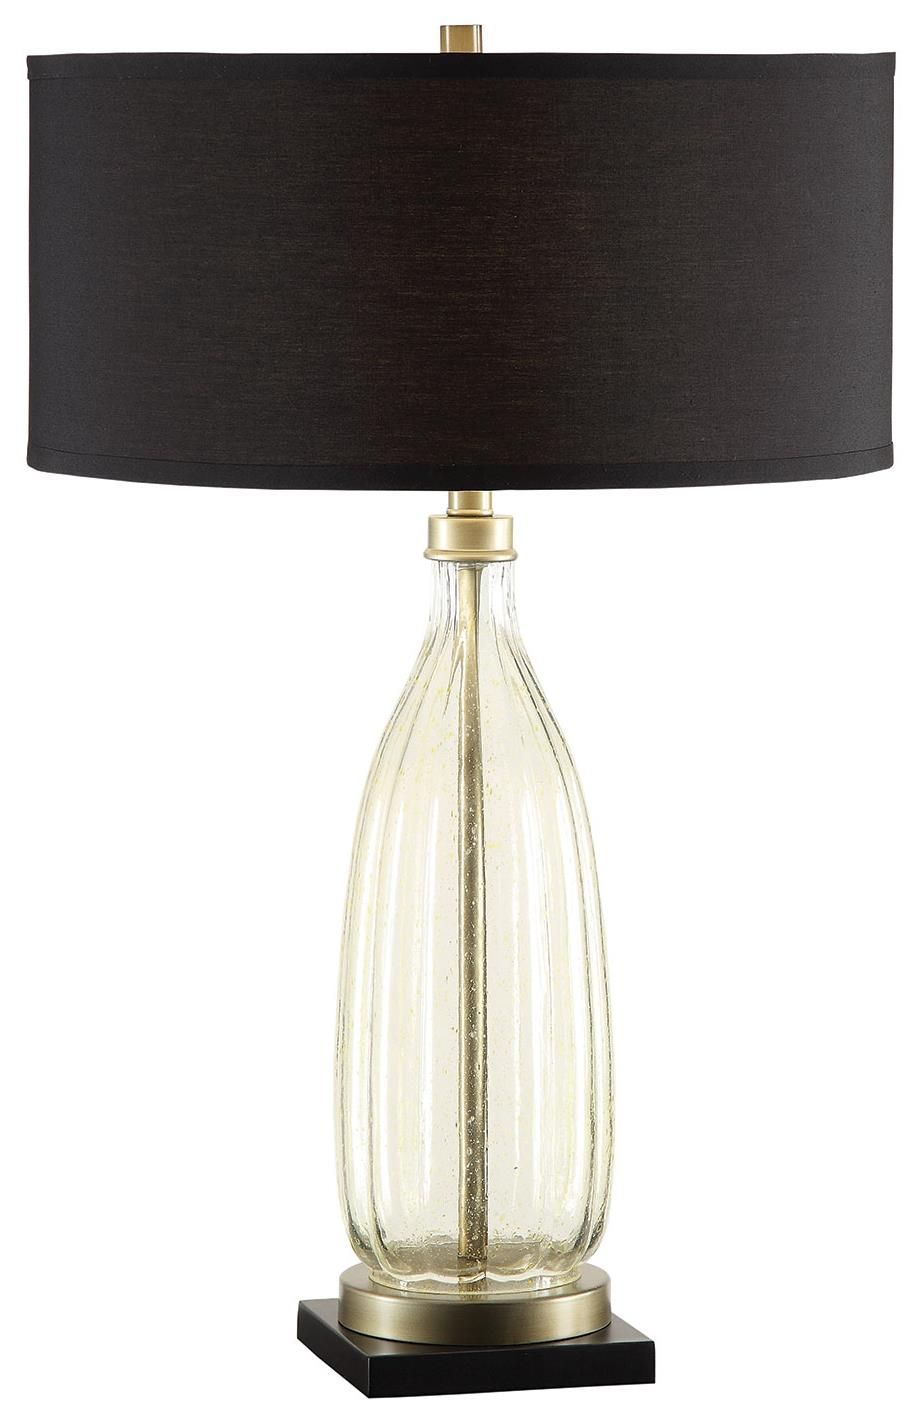 Coaster Table Lamps Lamp - Item Number: 901653